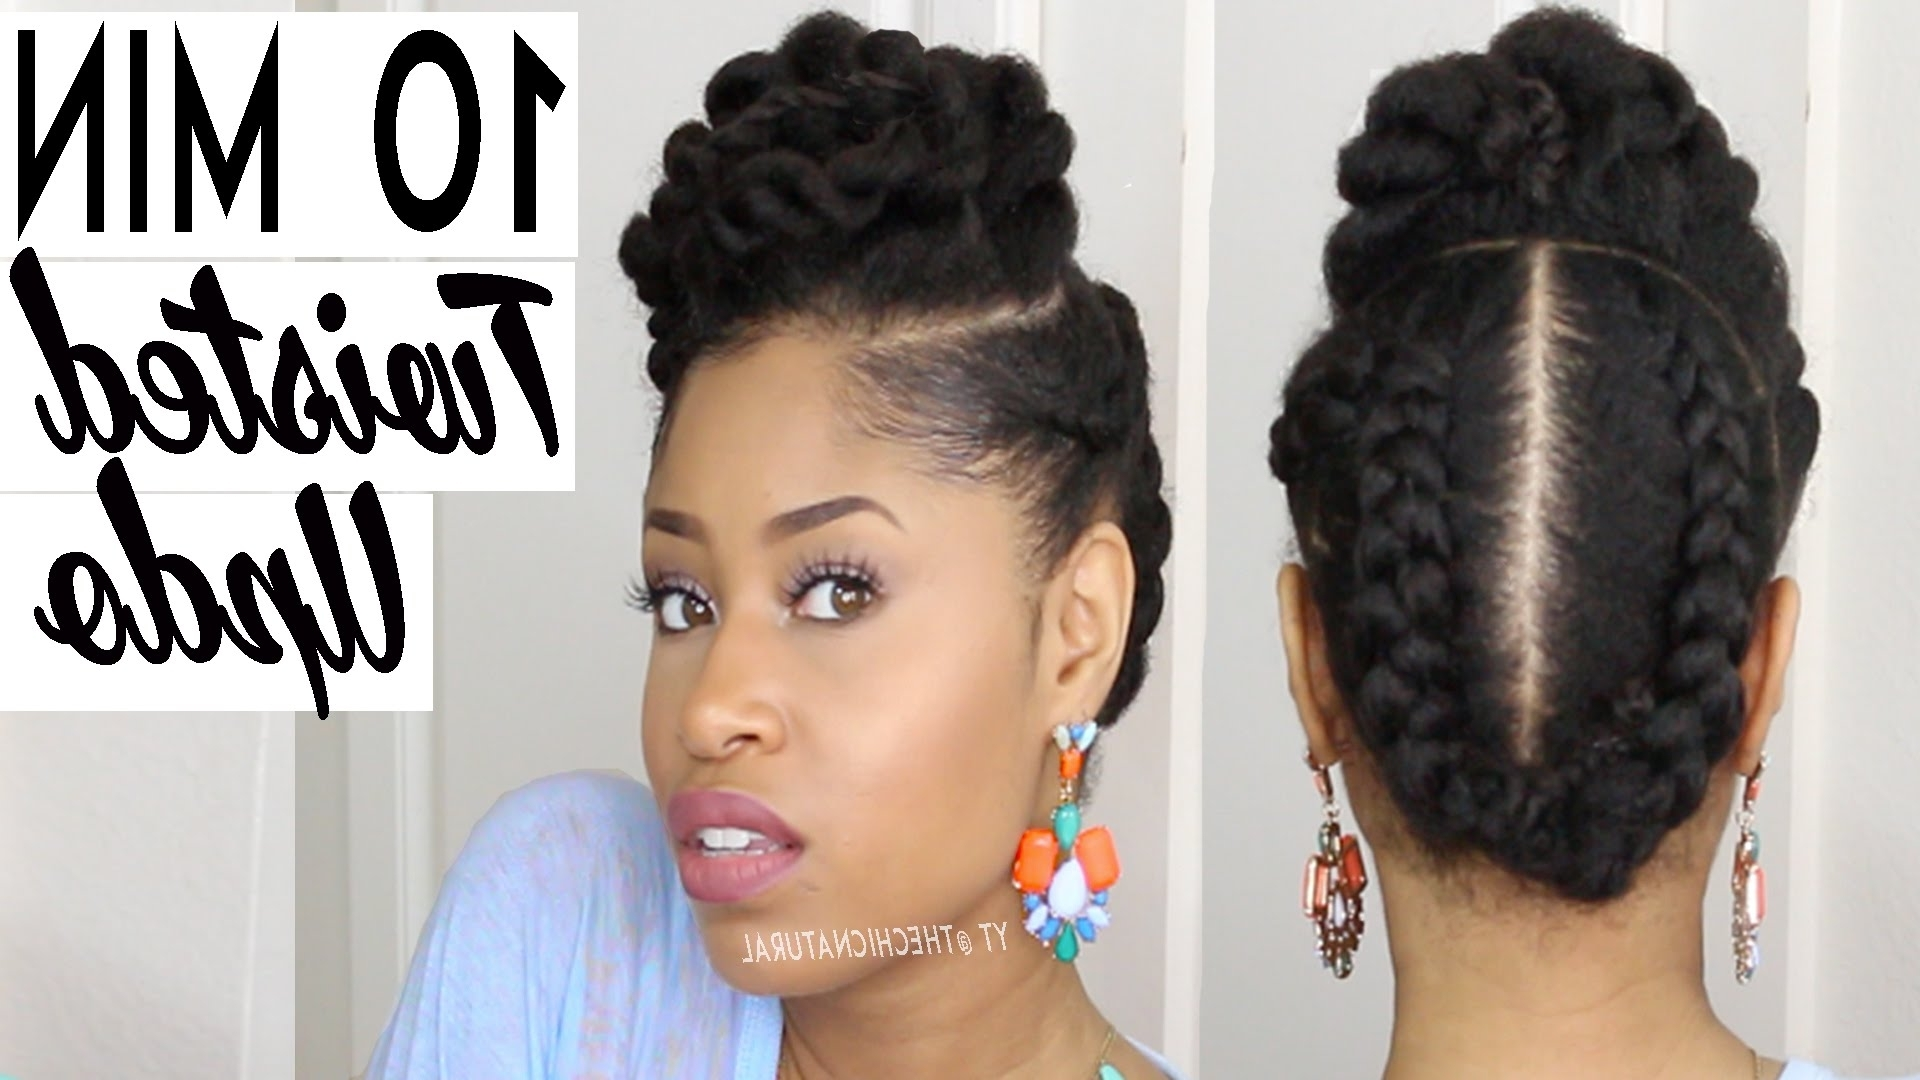 The 10 Minute Twisted Updo | Natural Hairstyle – Youtube Intended For Twist Updo Hairstyles (View 12 of 15)